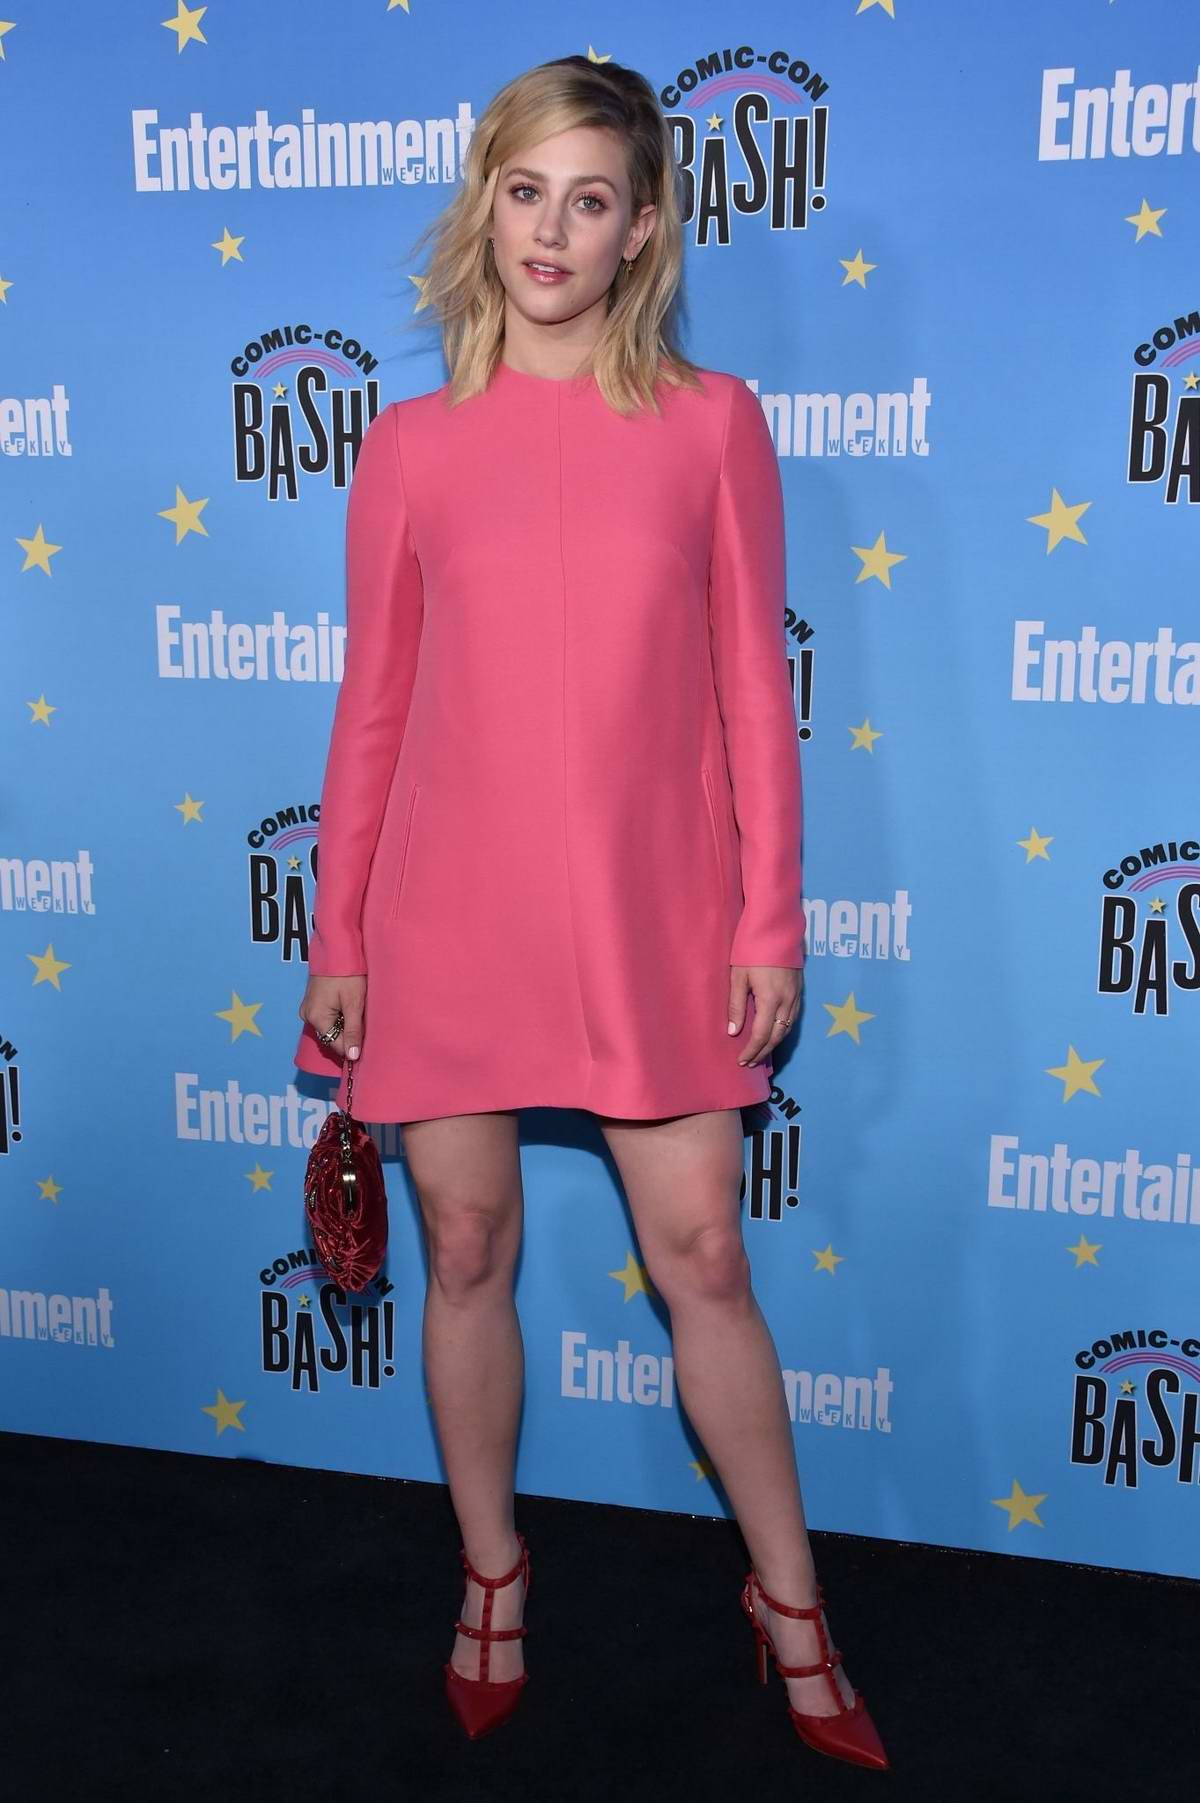 Lili Reinhart attends the Entertainment Weekly 2019 Comic-Con party at the Hard Rock Hotel in San Diego, California